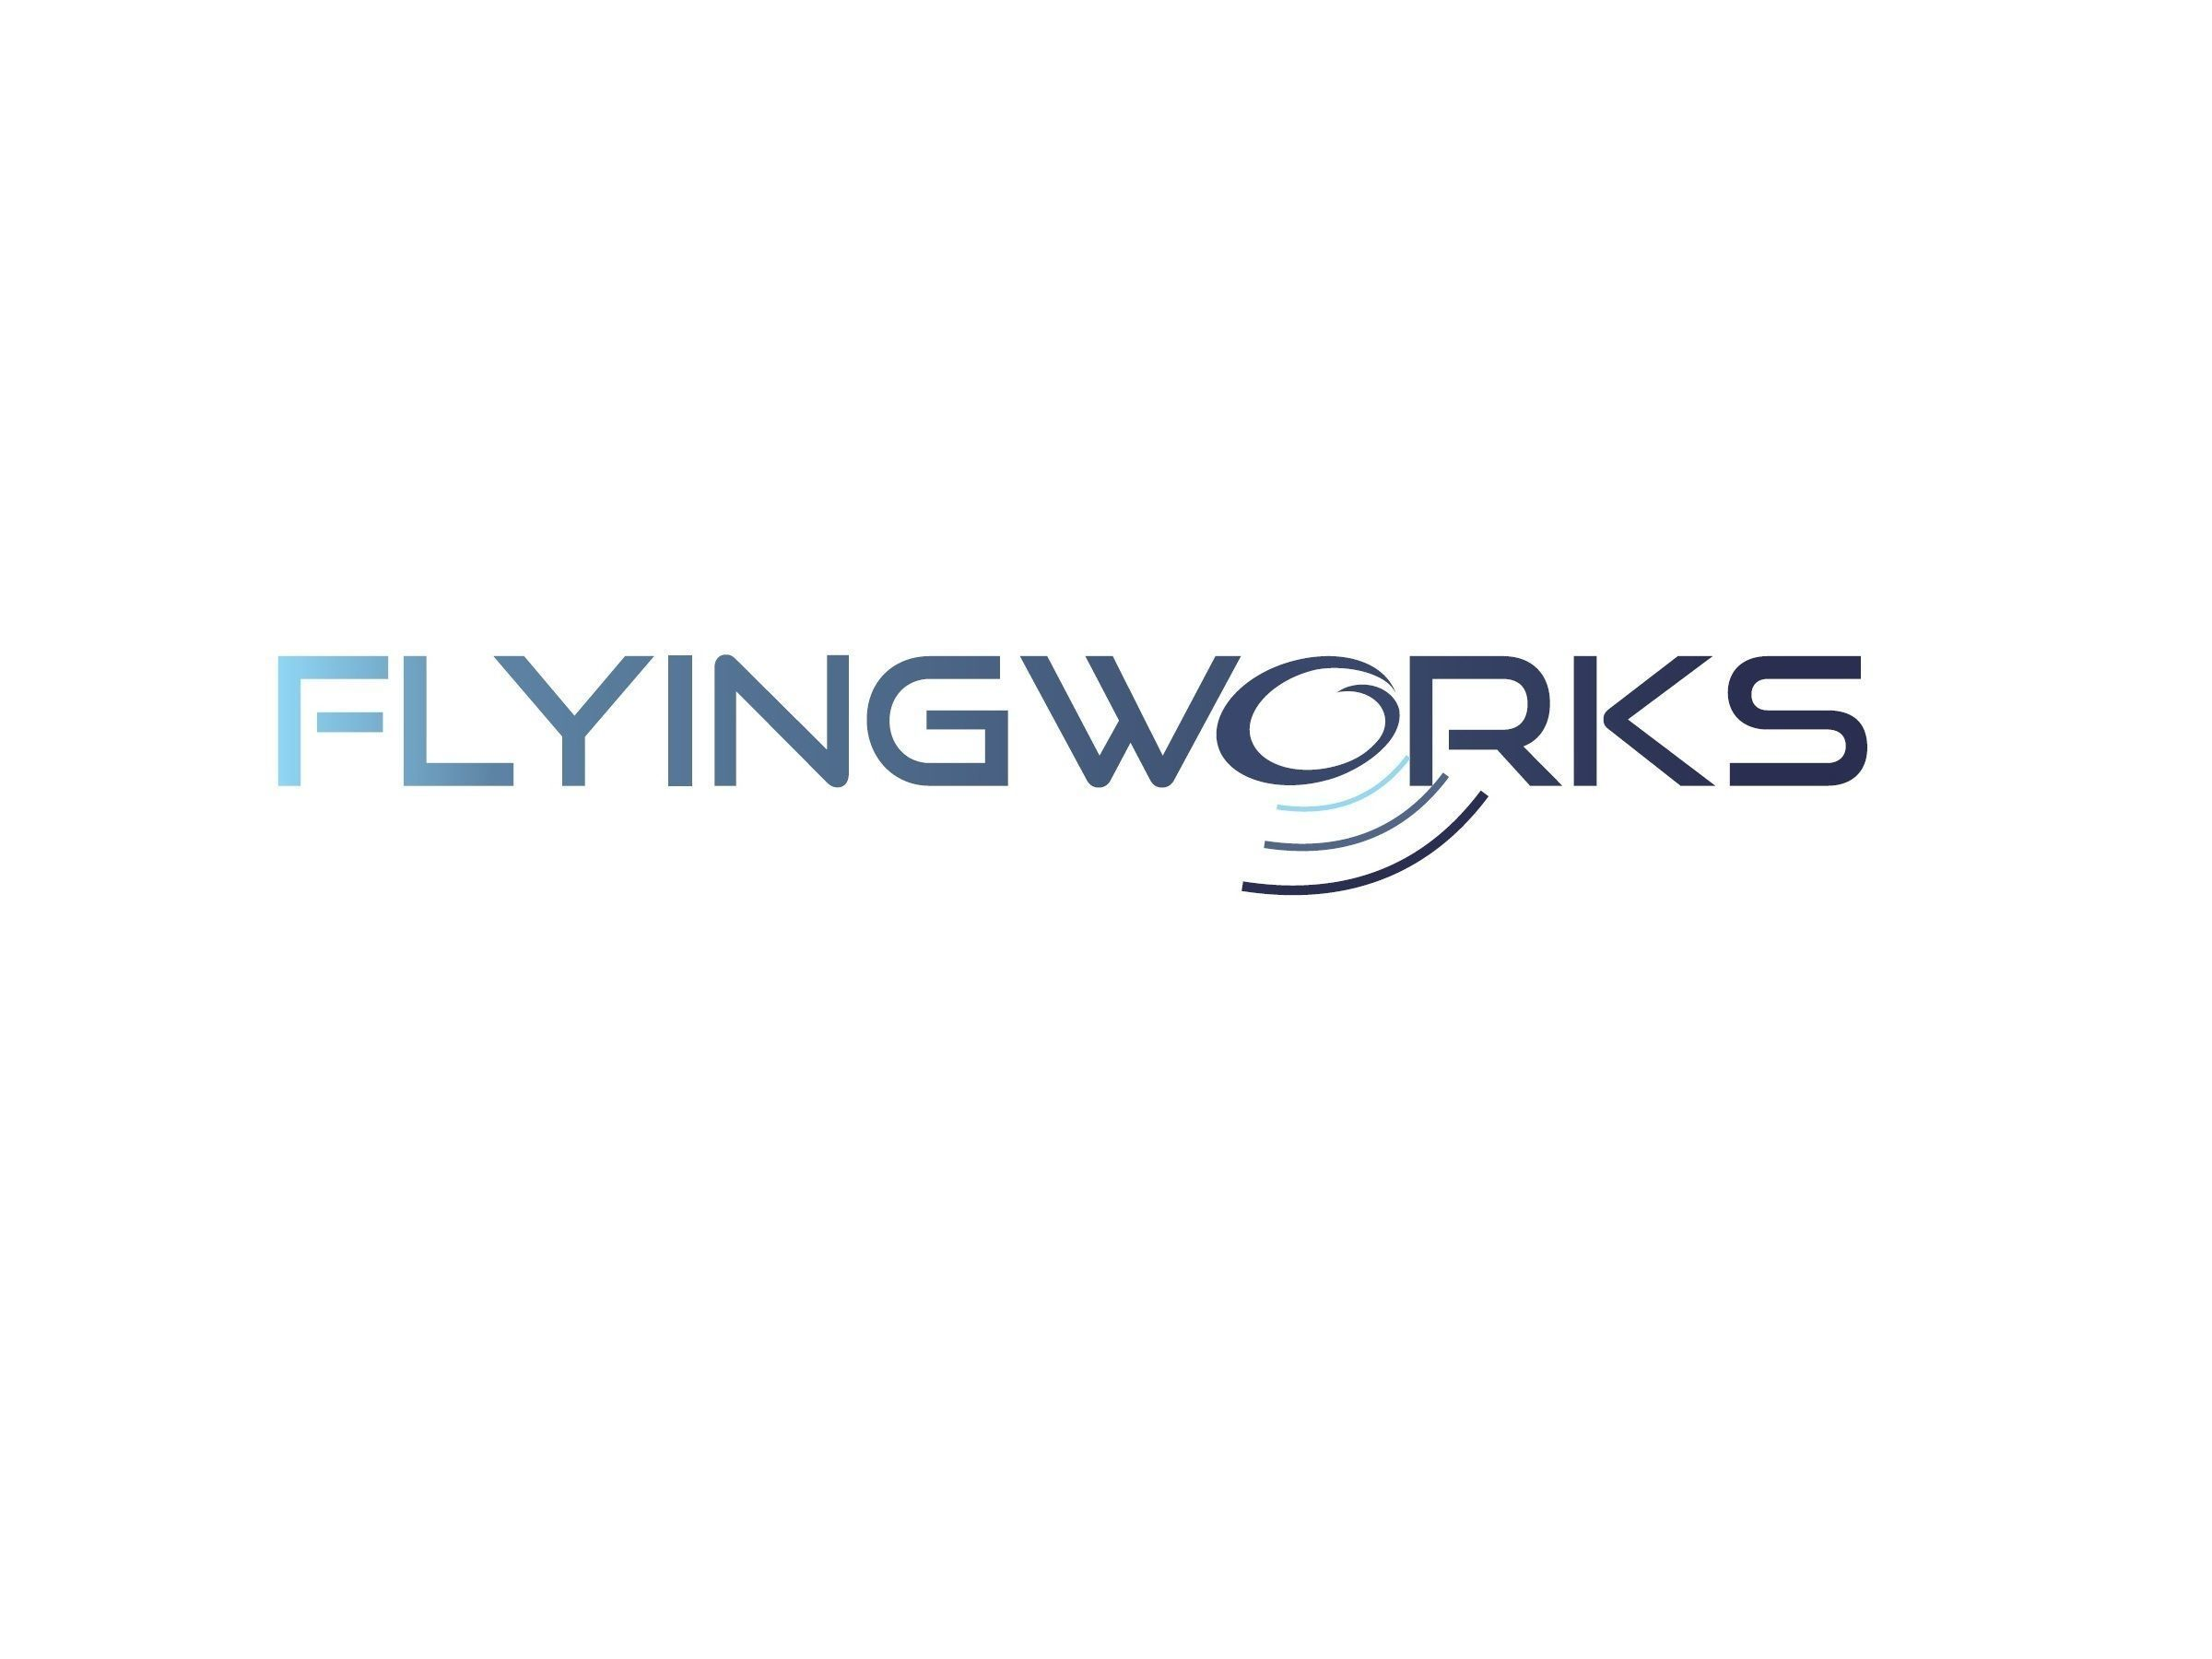 FlyingWorks